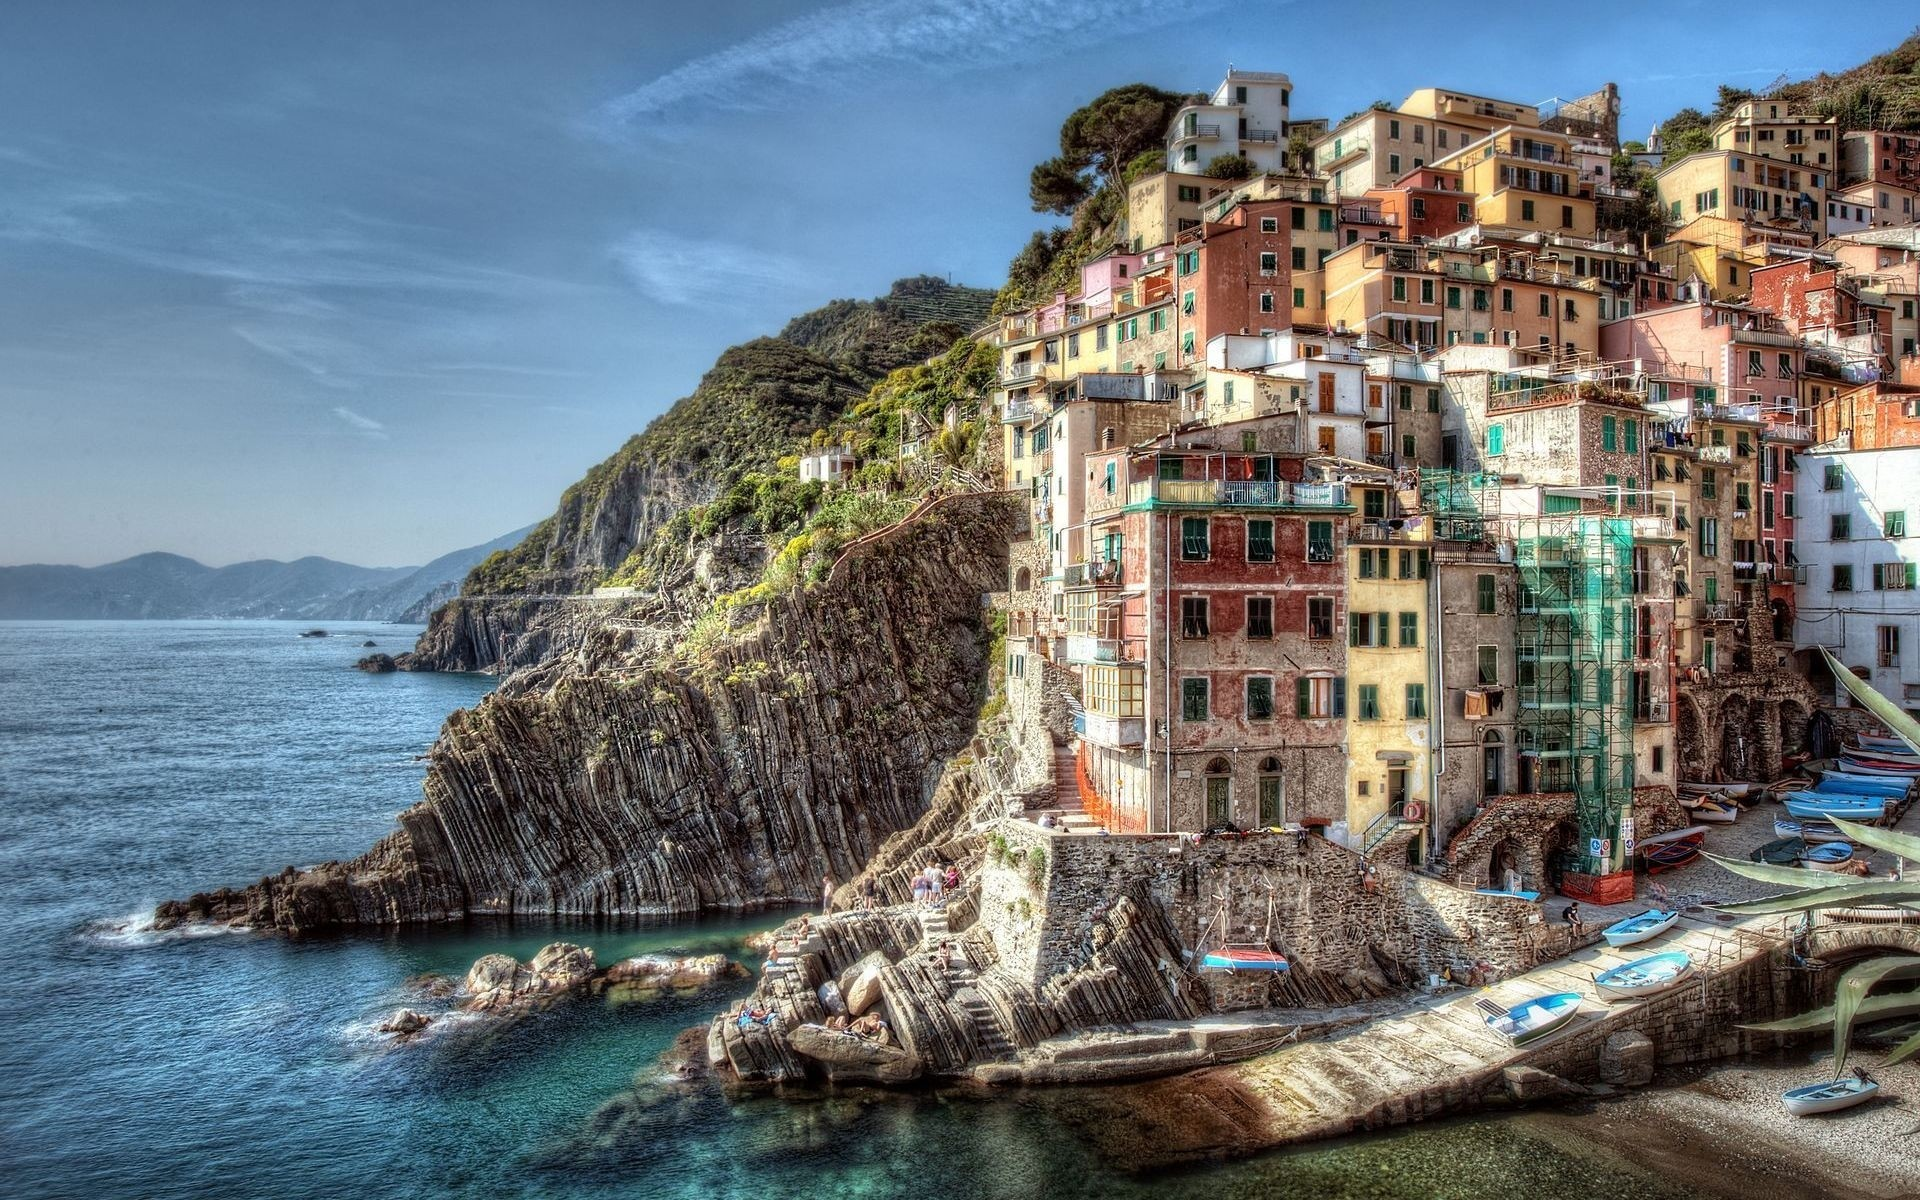 italy sea travel seashore water tourism architecture sky city sight town landscape ocean scenic vacation beach boat building destination house coast rocks